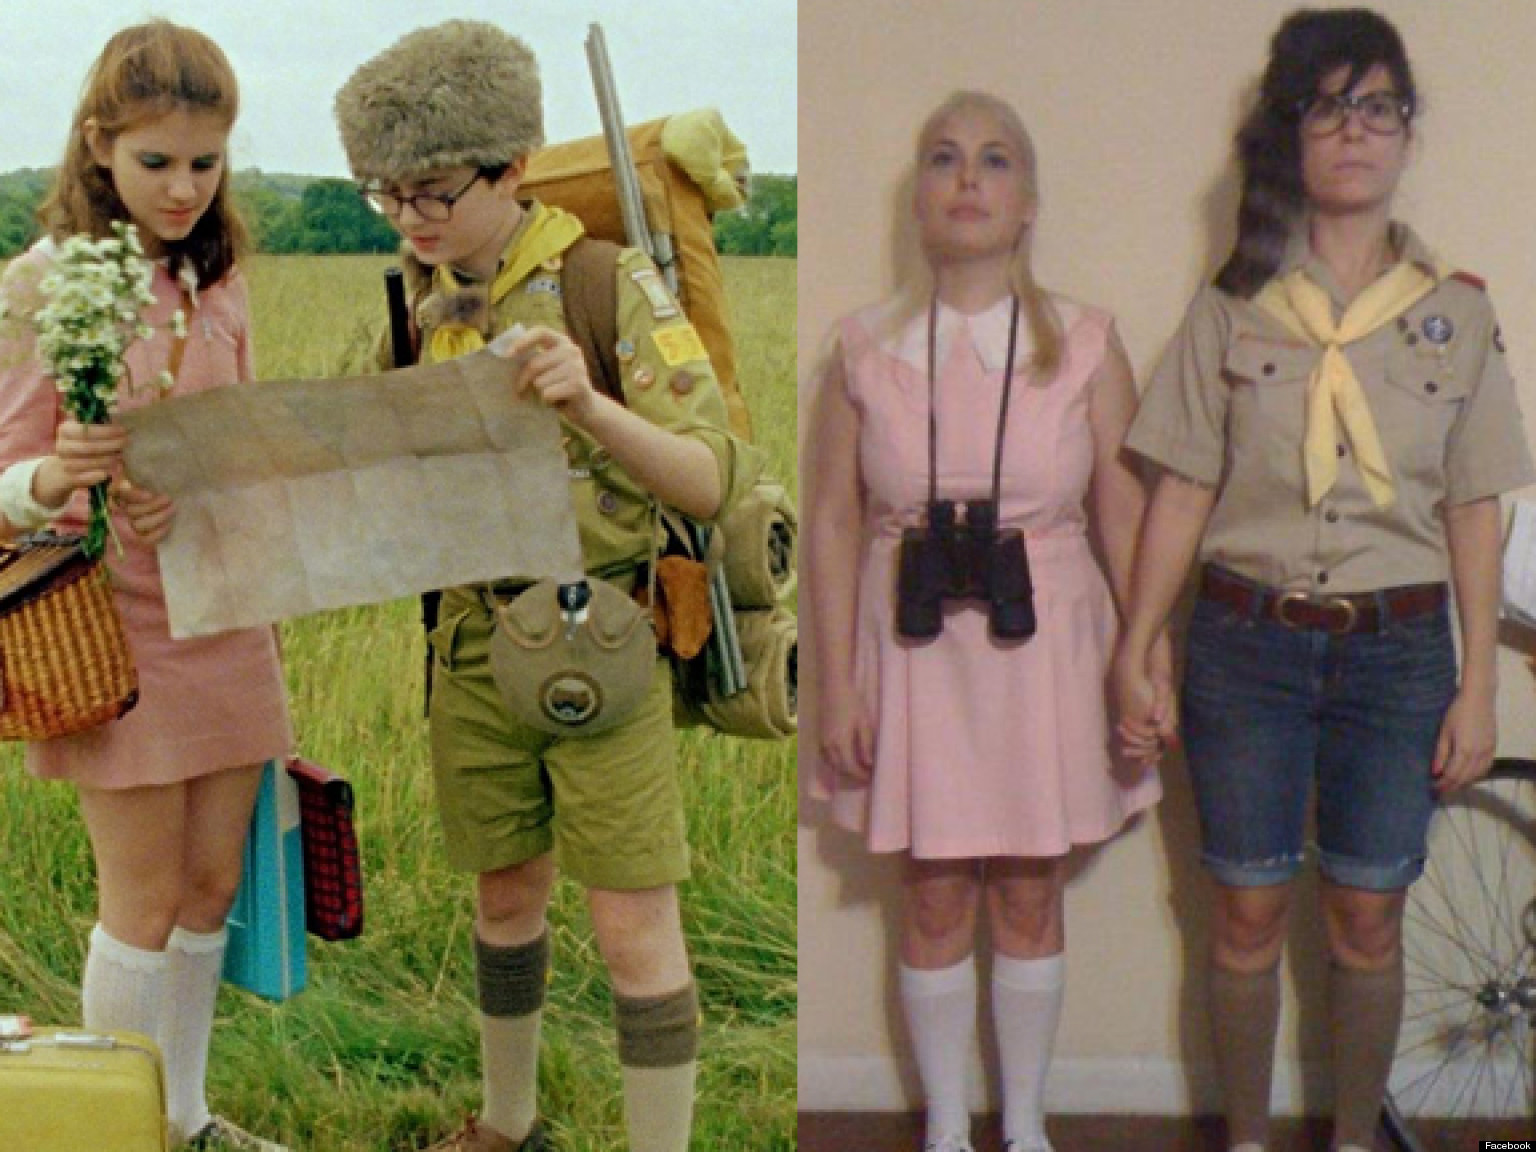 Women's Halloween Costumes 2012: Ideas More Creative Than 'Sexy ...